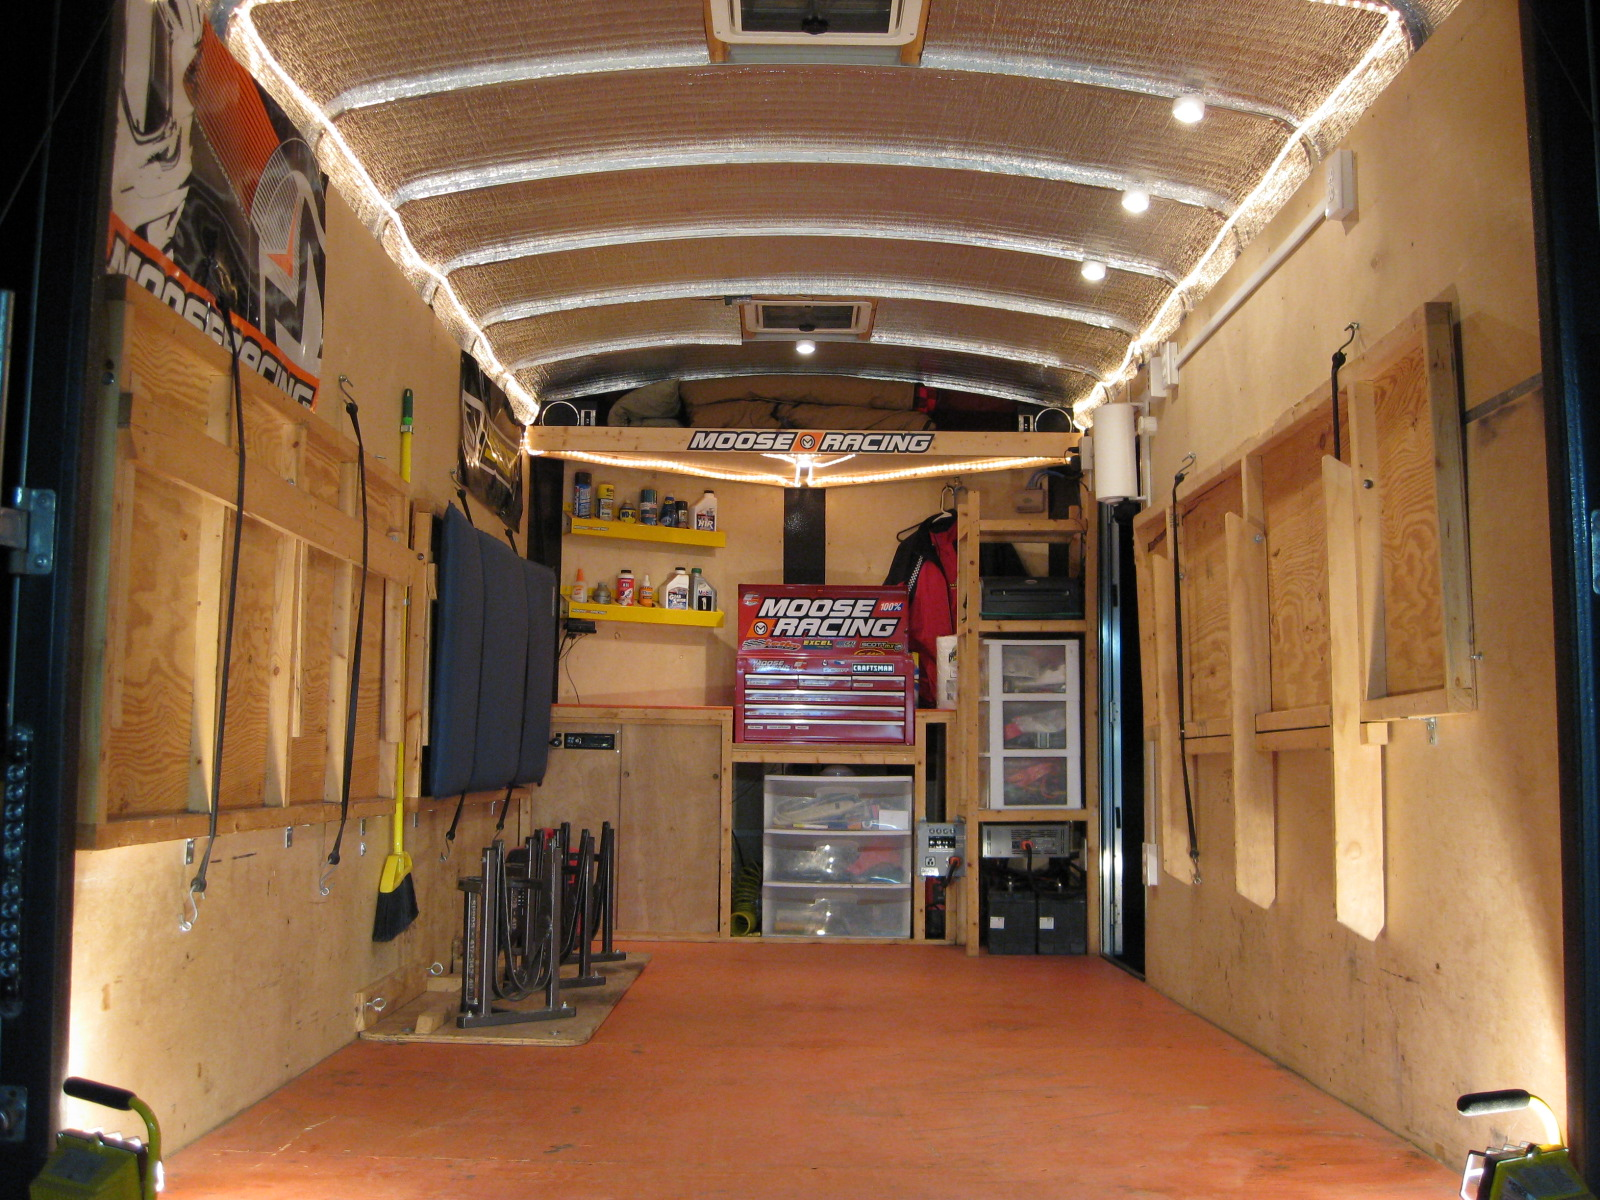 Enclosed Landscape Trailer Setup Ideas Car Interior Design